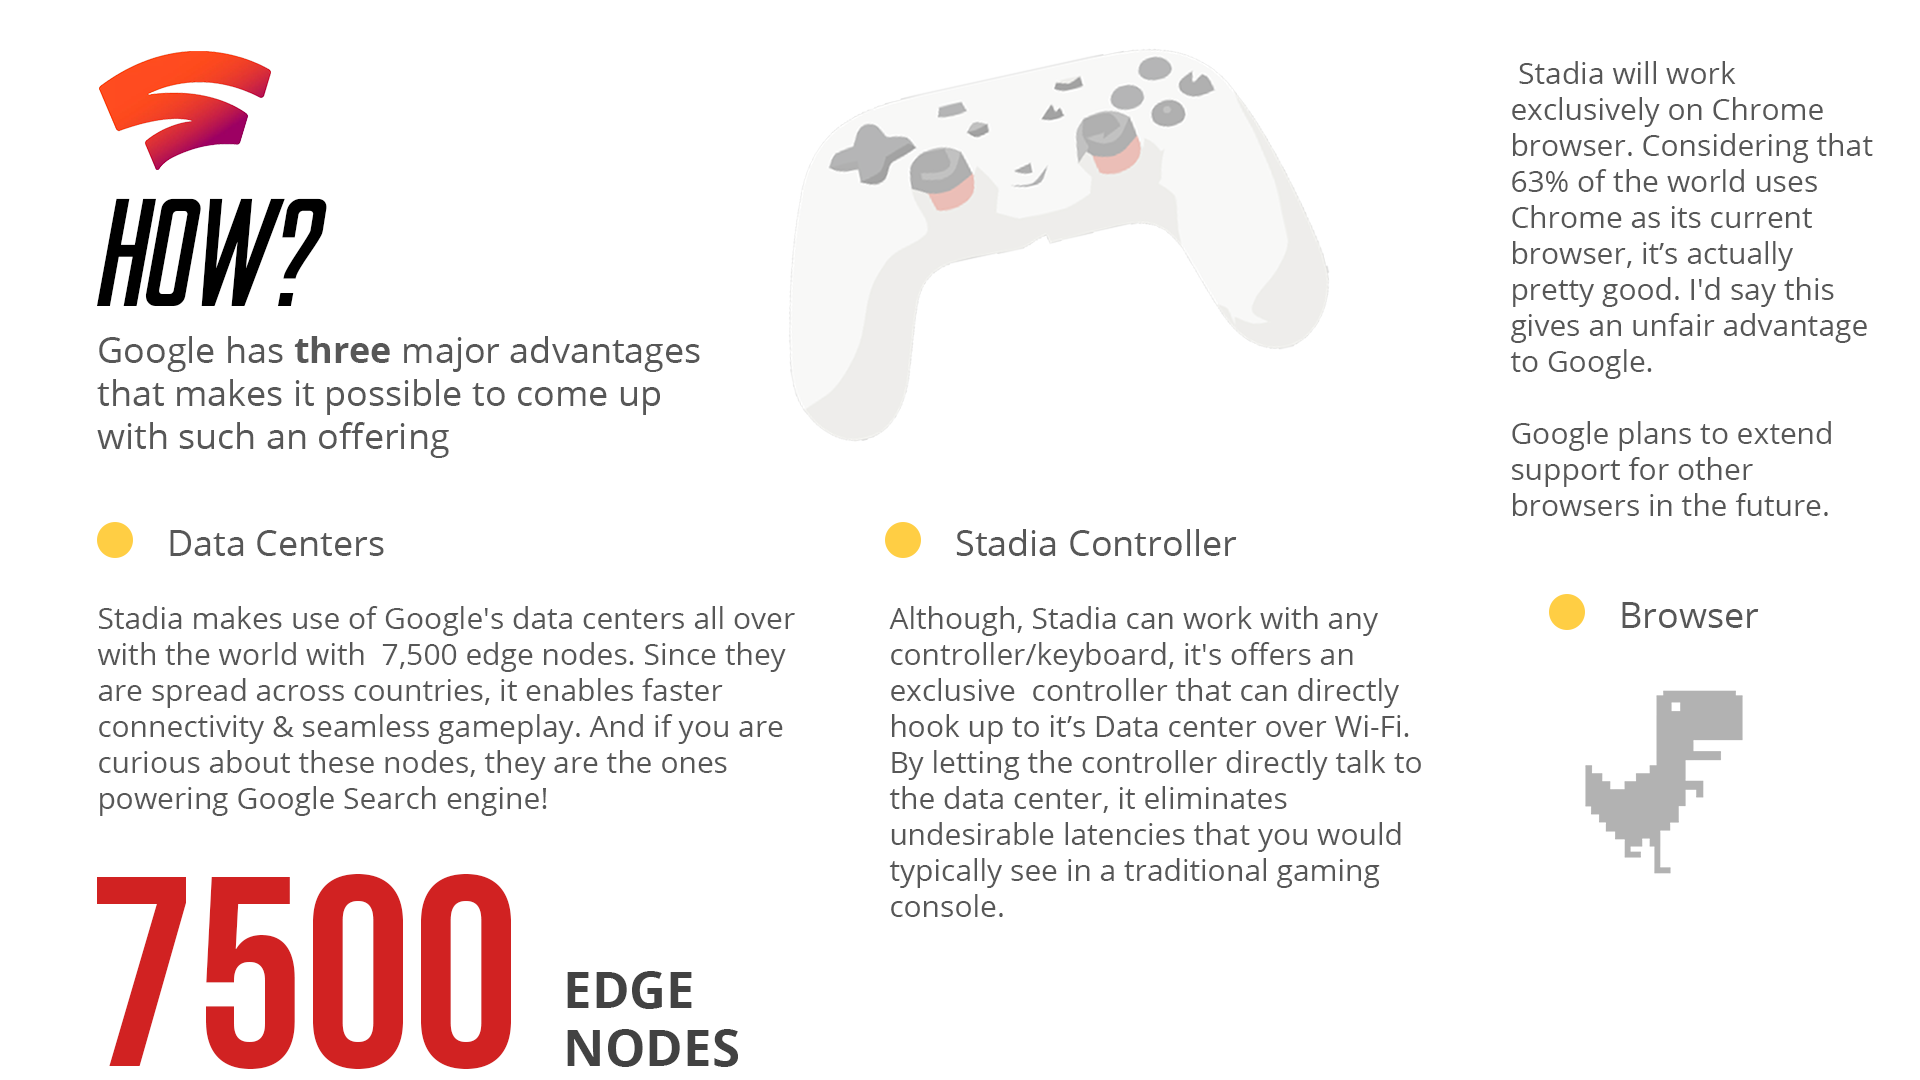 Are Stadia games free